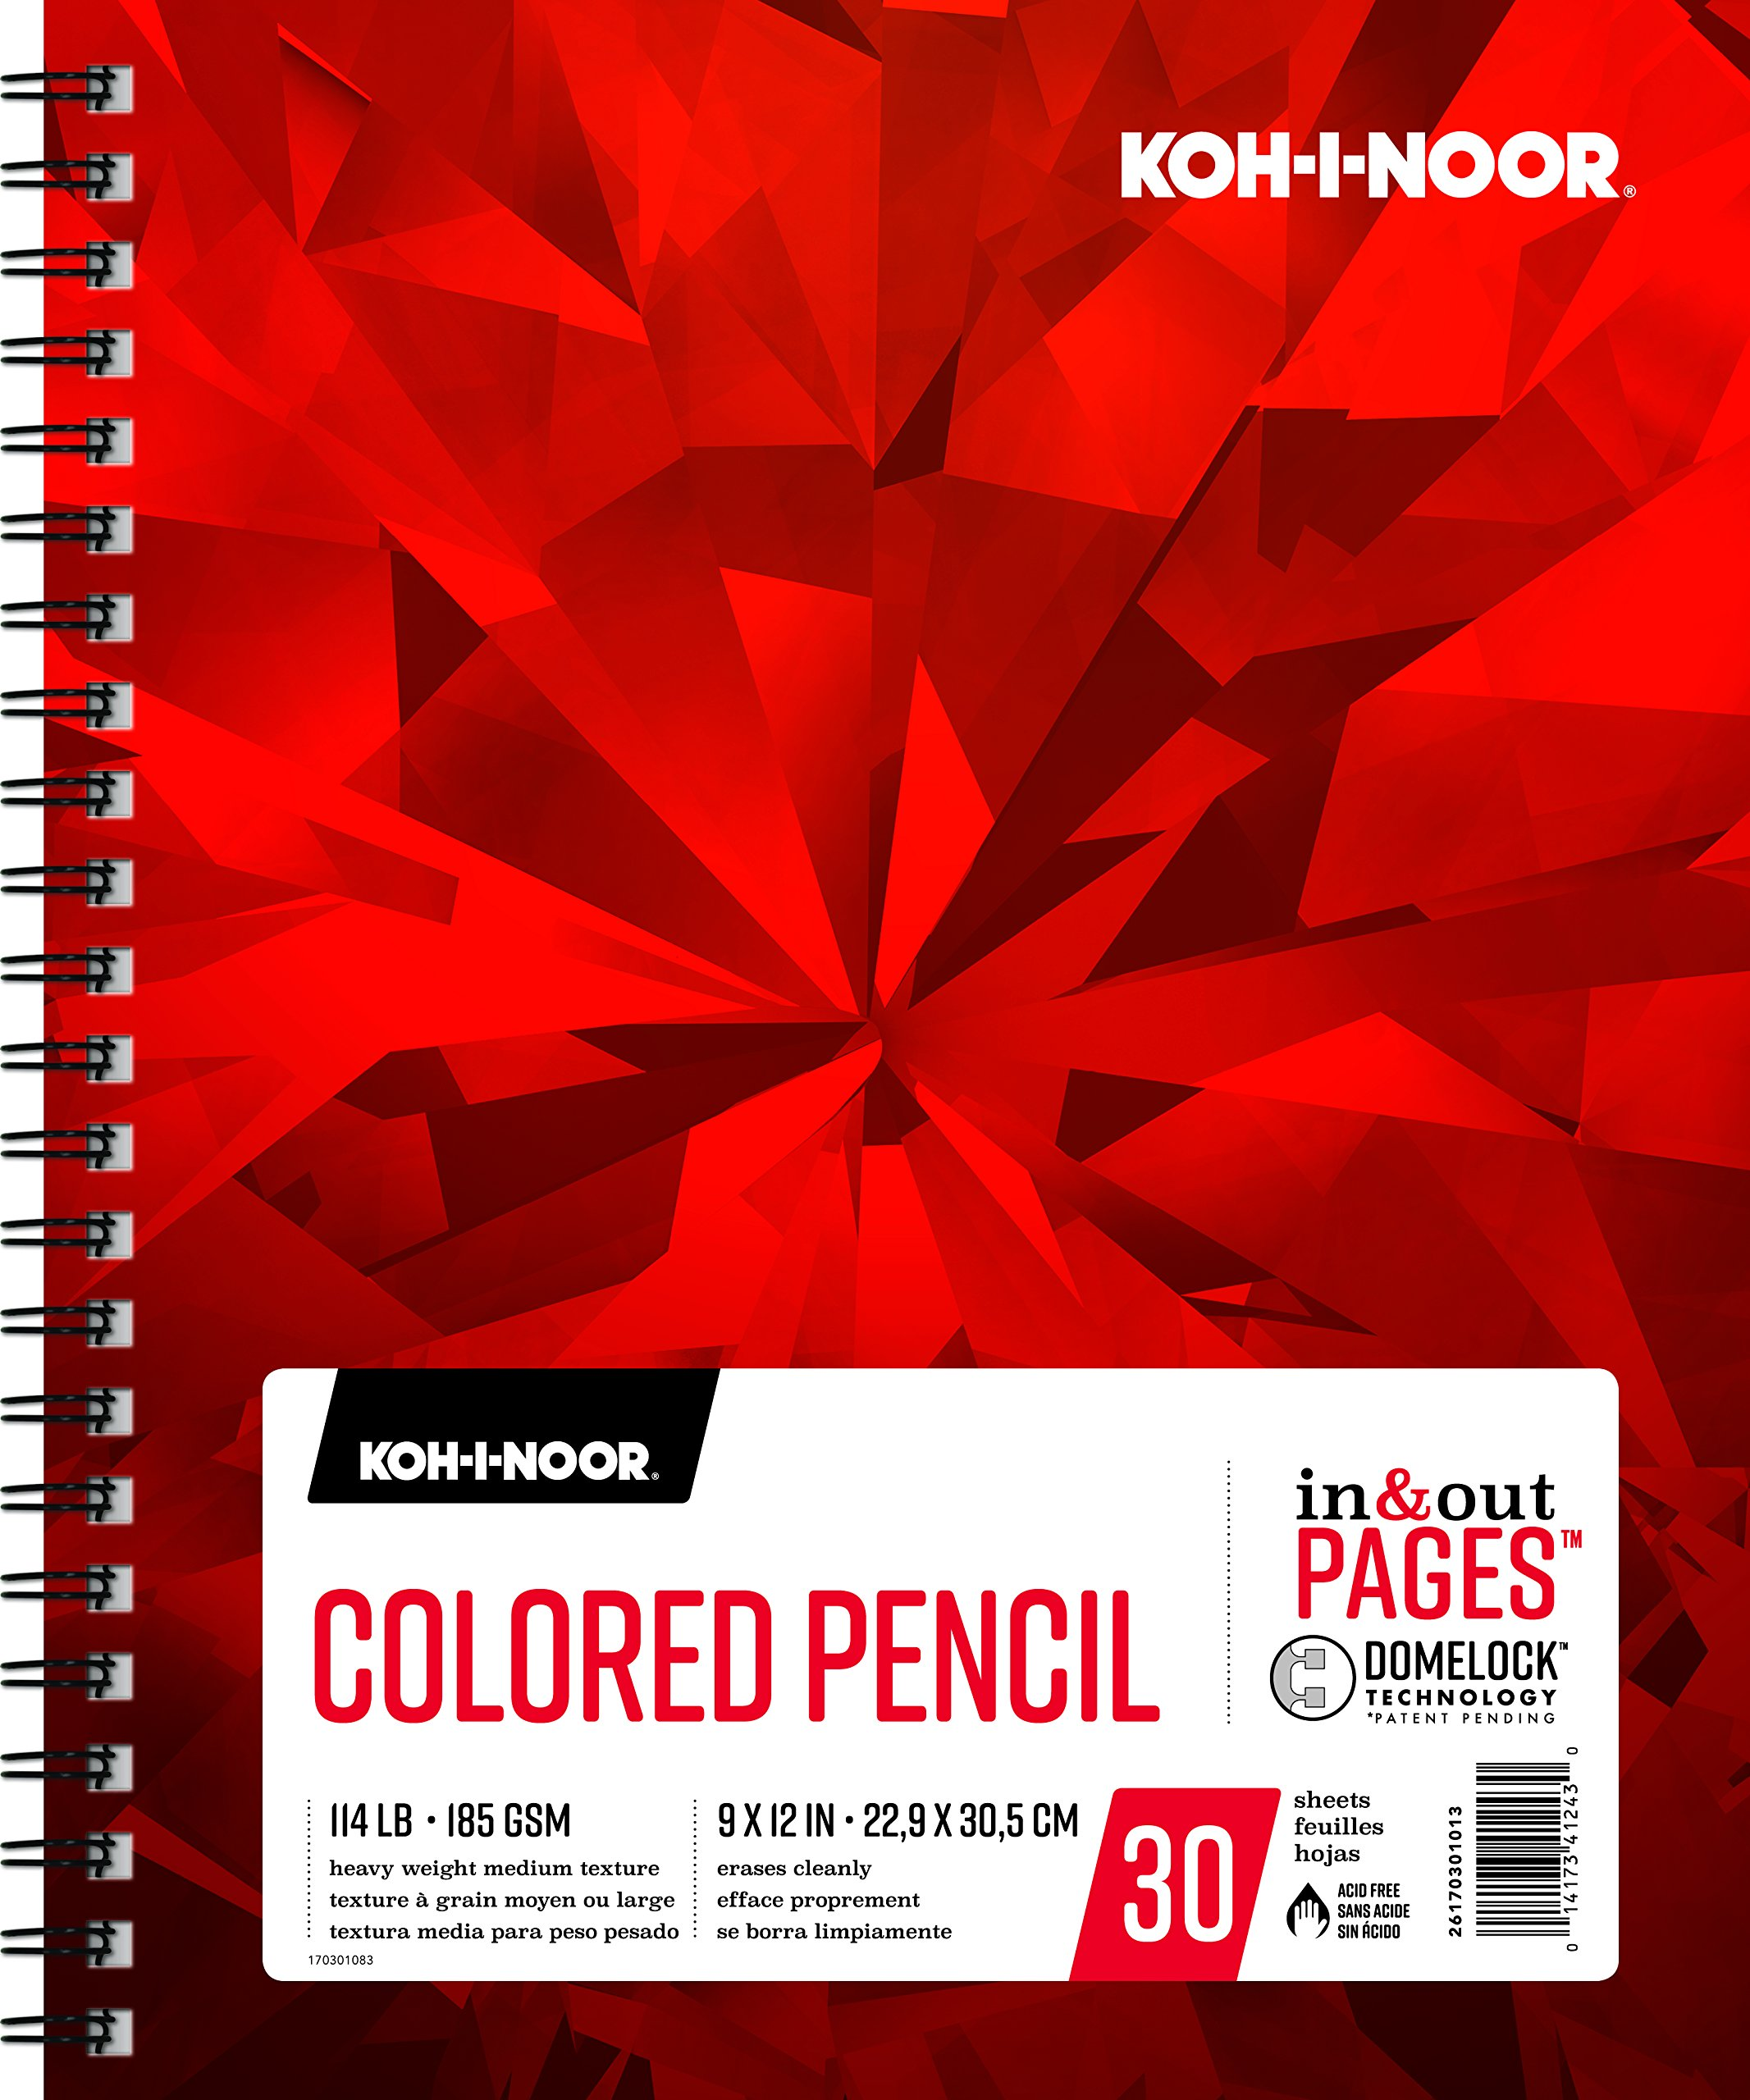 Koh-I-Noor Colored Pencil White Drawing Paper Pad, In and Out Pages, 114lb, 185 GSM, 9 x 12'', Side Wire-Bound, 30 Sheets per Pad (26170301013)